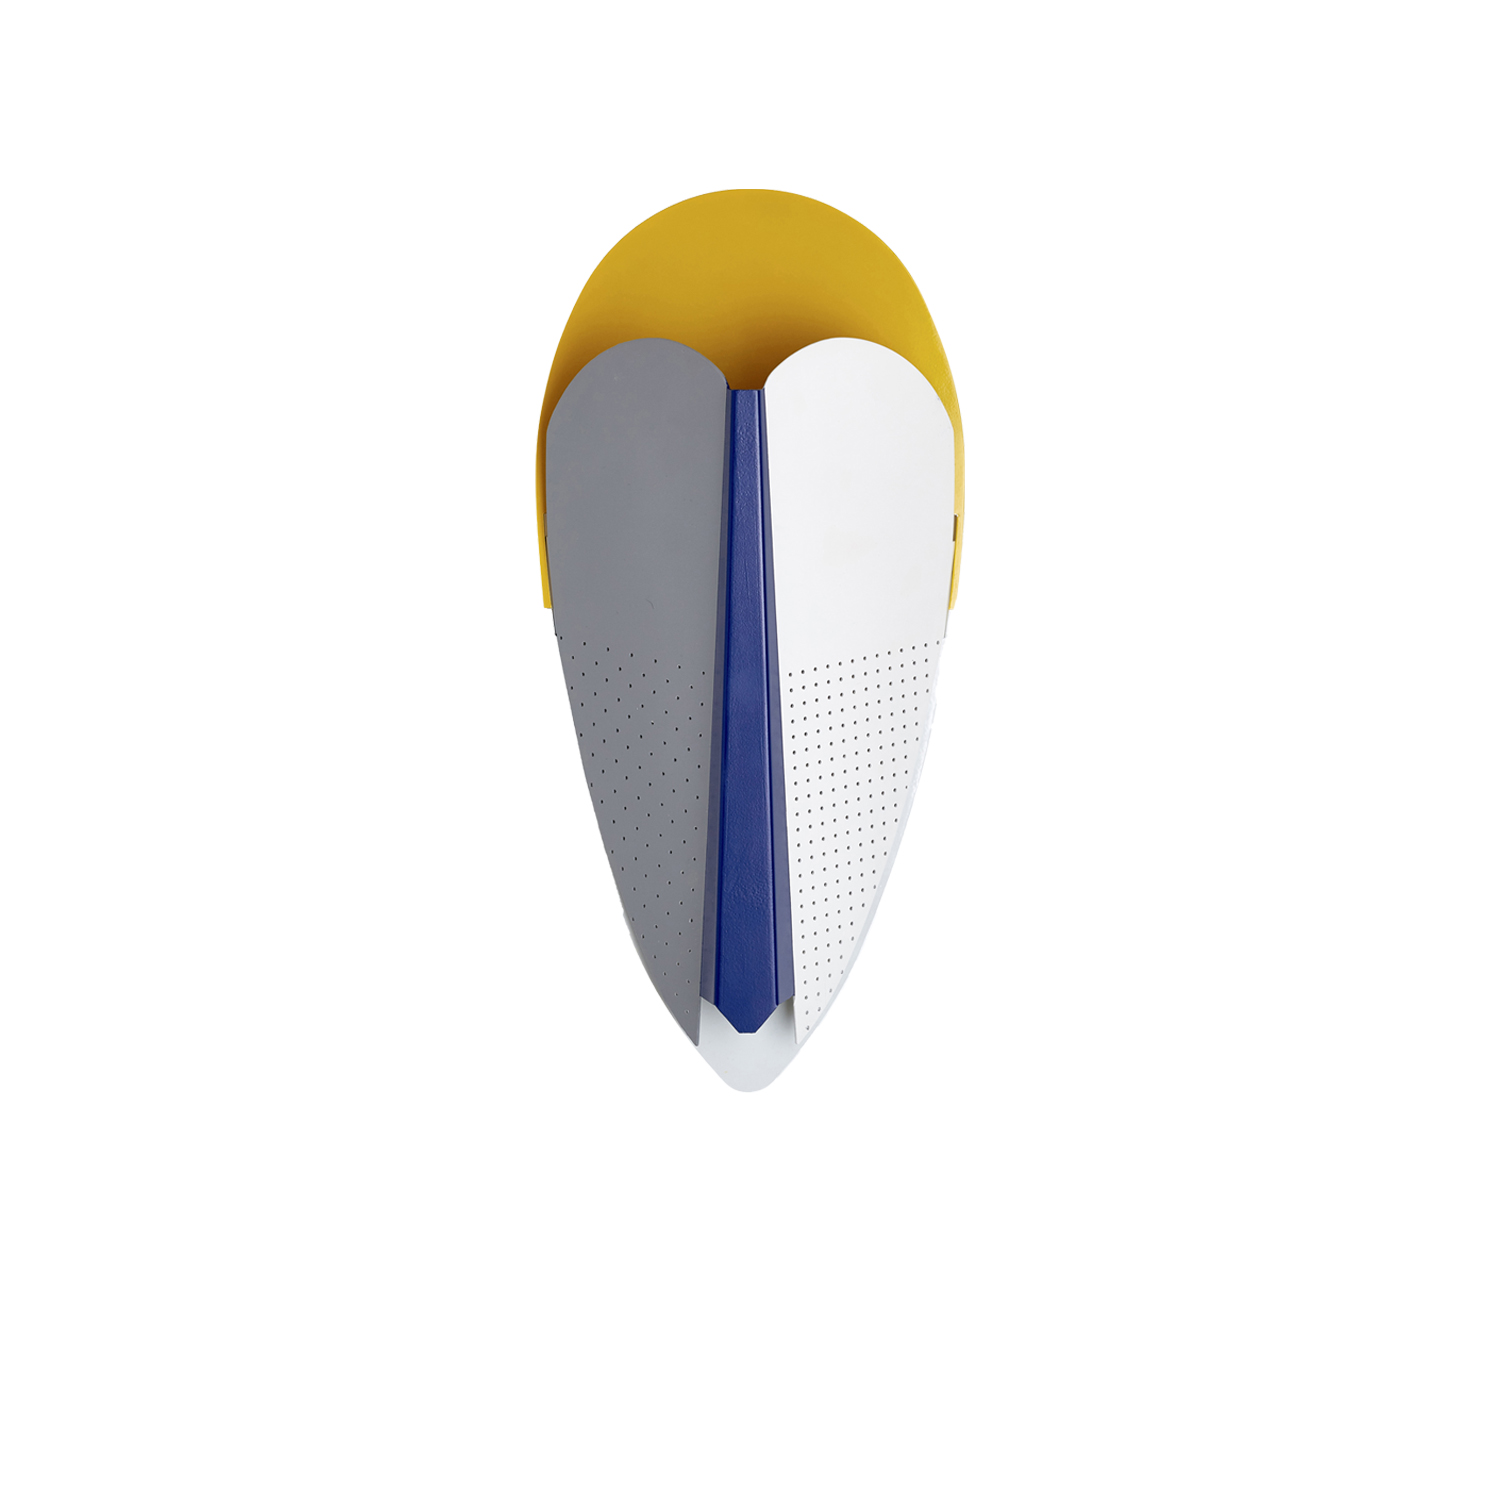 Sorcier Wall Light - Sorcier is a wall light inspired by the ritual Ngil masks of the Fang tribe in Gabon. The light appears through the perforations in the mask and shines upward in a graphic and gentle way. More than a light, Sorcier is a sculpture. It changes personality depending on the combination of colours, textures and perforations patterns.  | Matter of Stuff